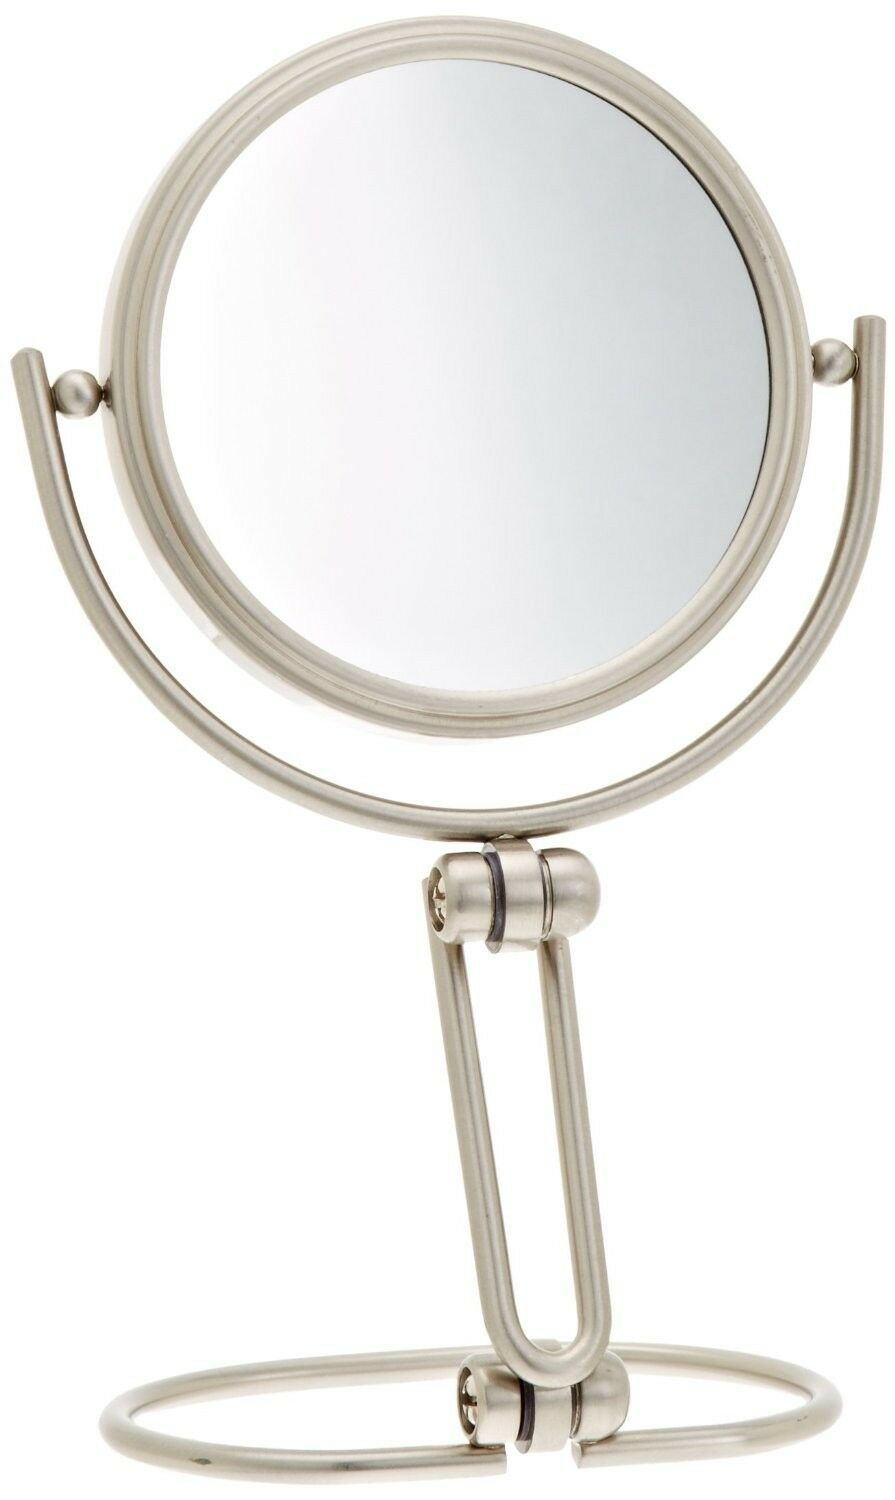 Primary image for 3 Inch Folding Two Sided Swivel Travel Mirror 15x Magnification Nickel Finish